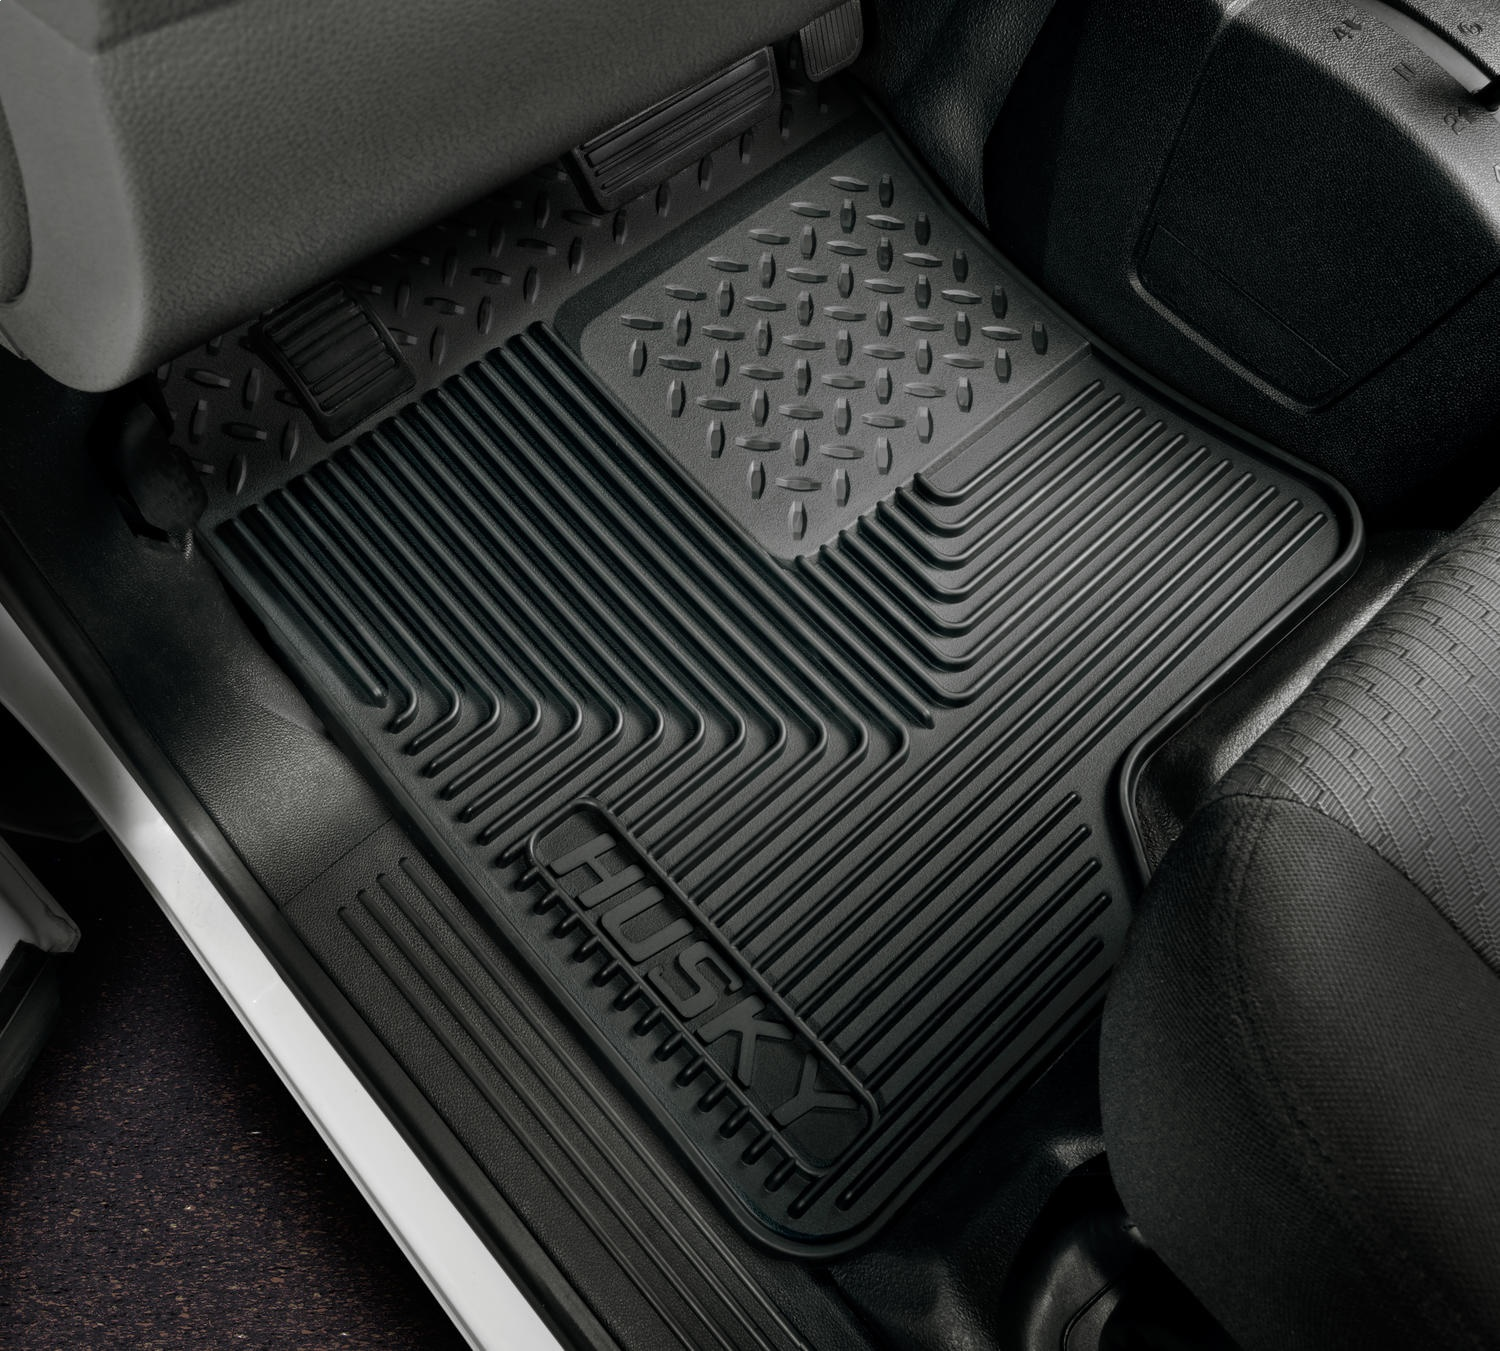 Husky Liners Front Floor Mats Fits 02-06 Avalanche 1500,002-06 Avalanche 2500 51031